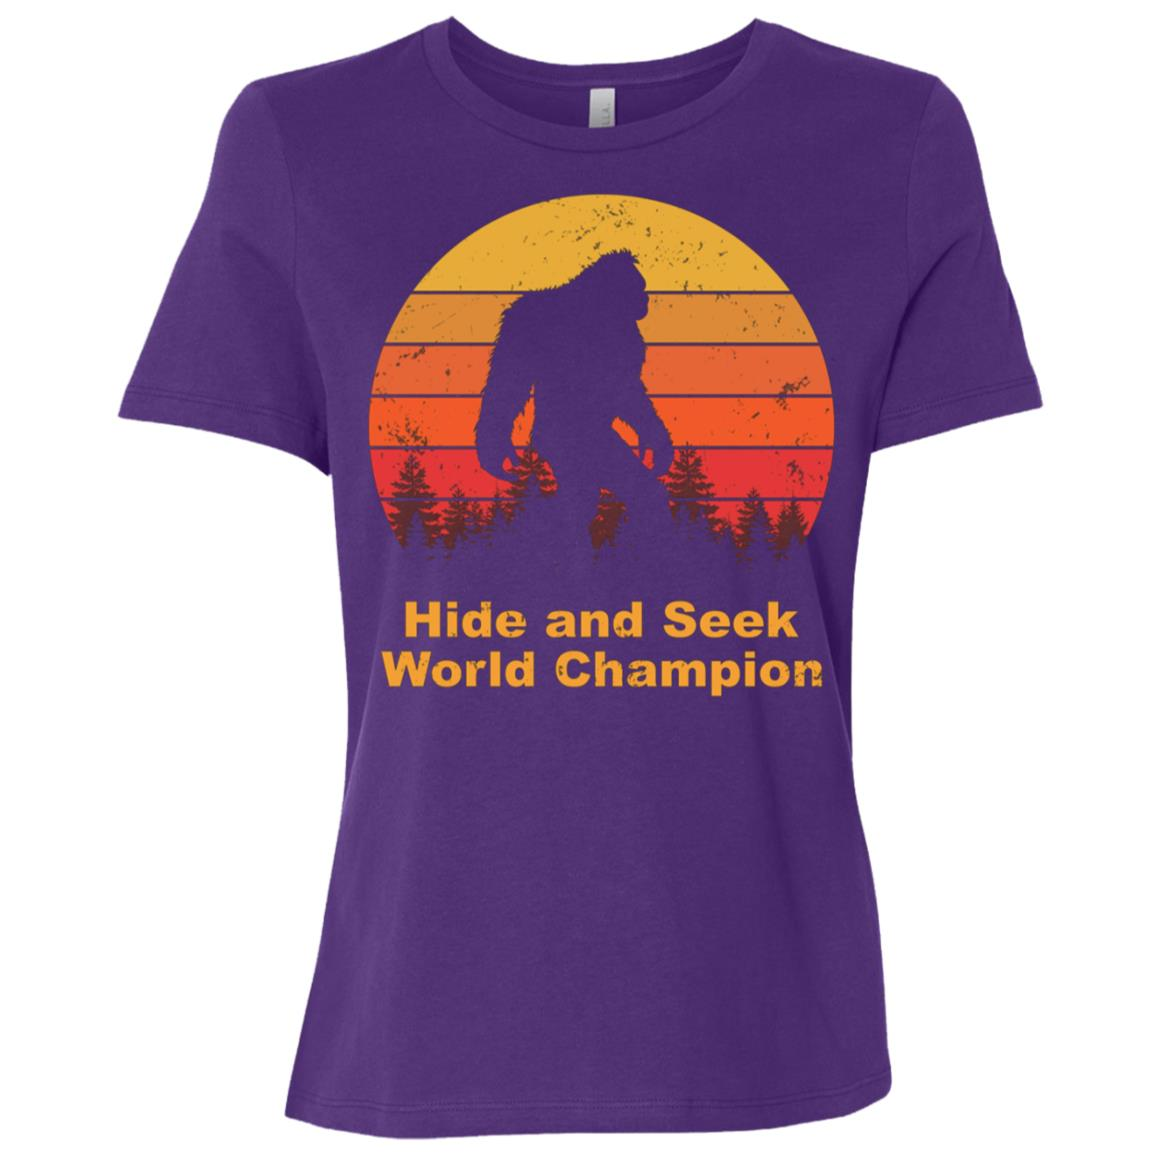 Hide and seek champion bigfoot Funny Tee-1 Women Short Sleeve T-Shirt